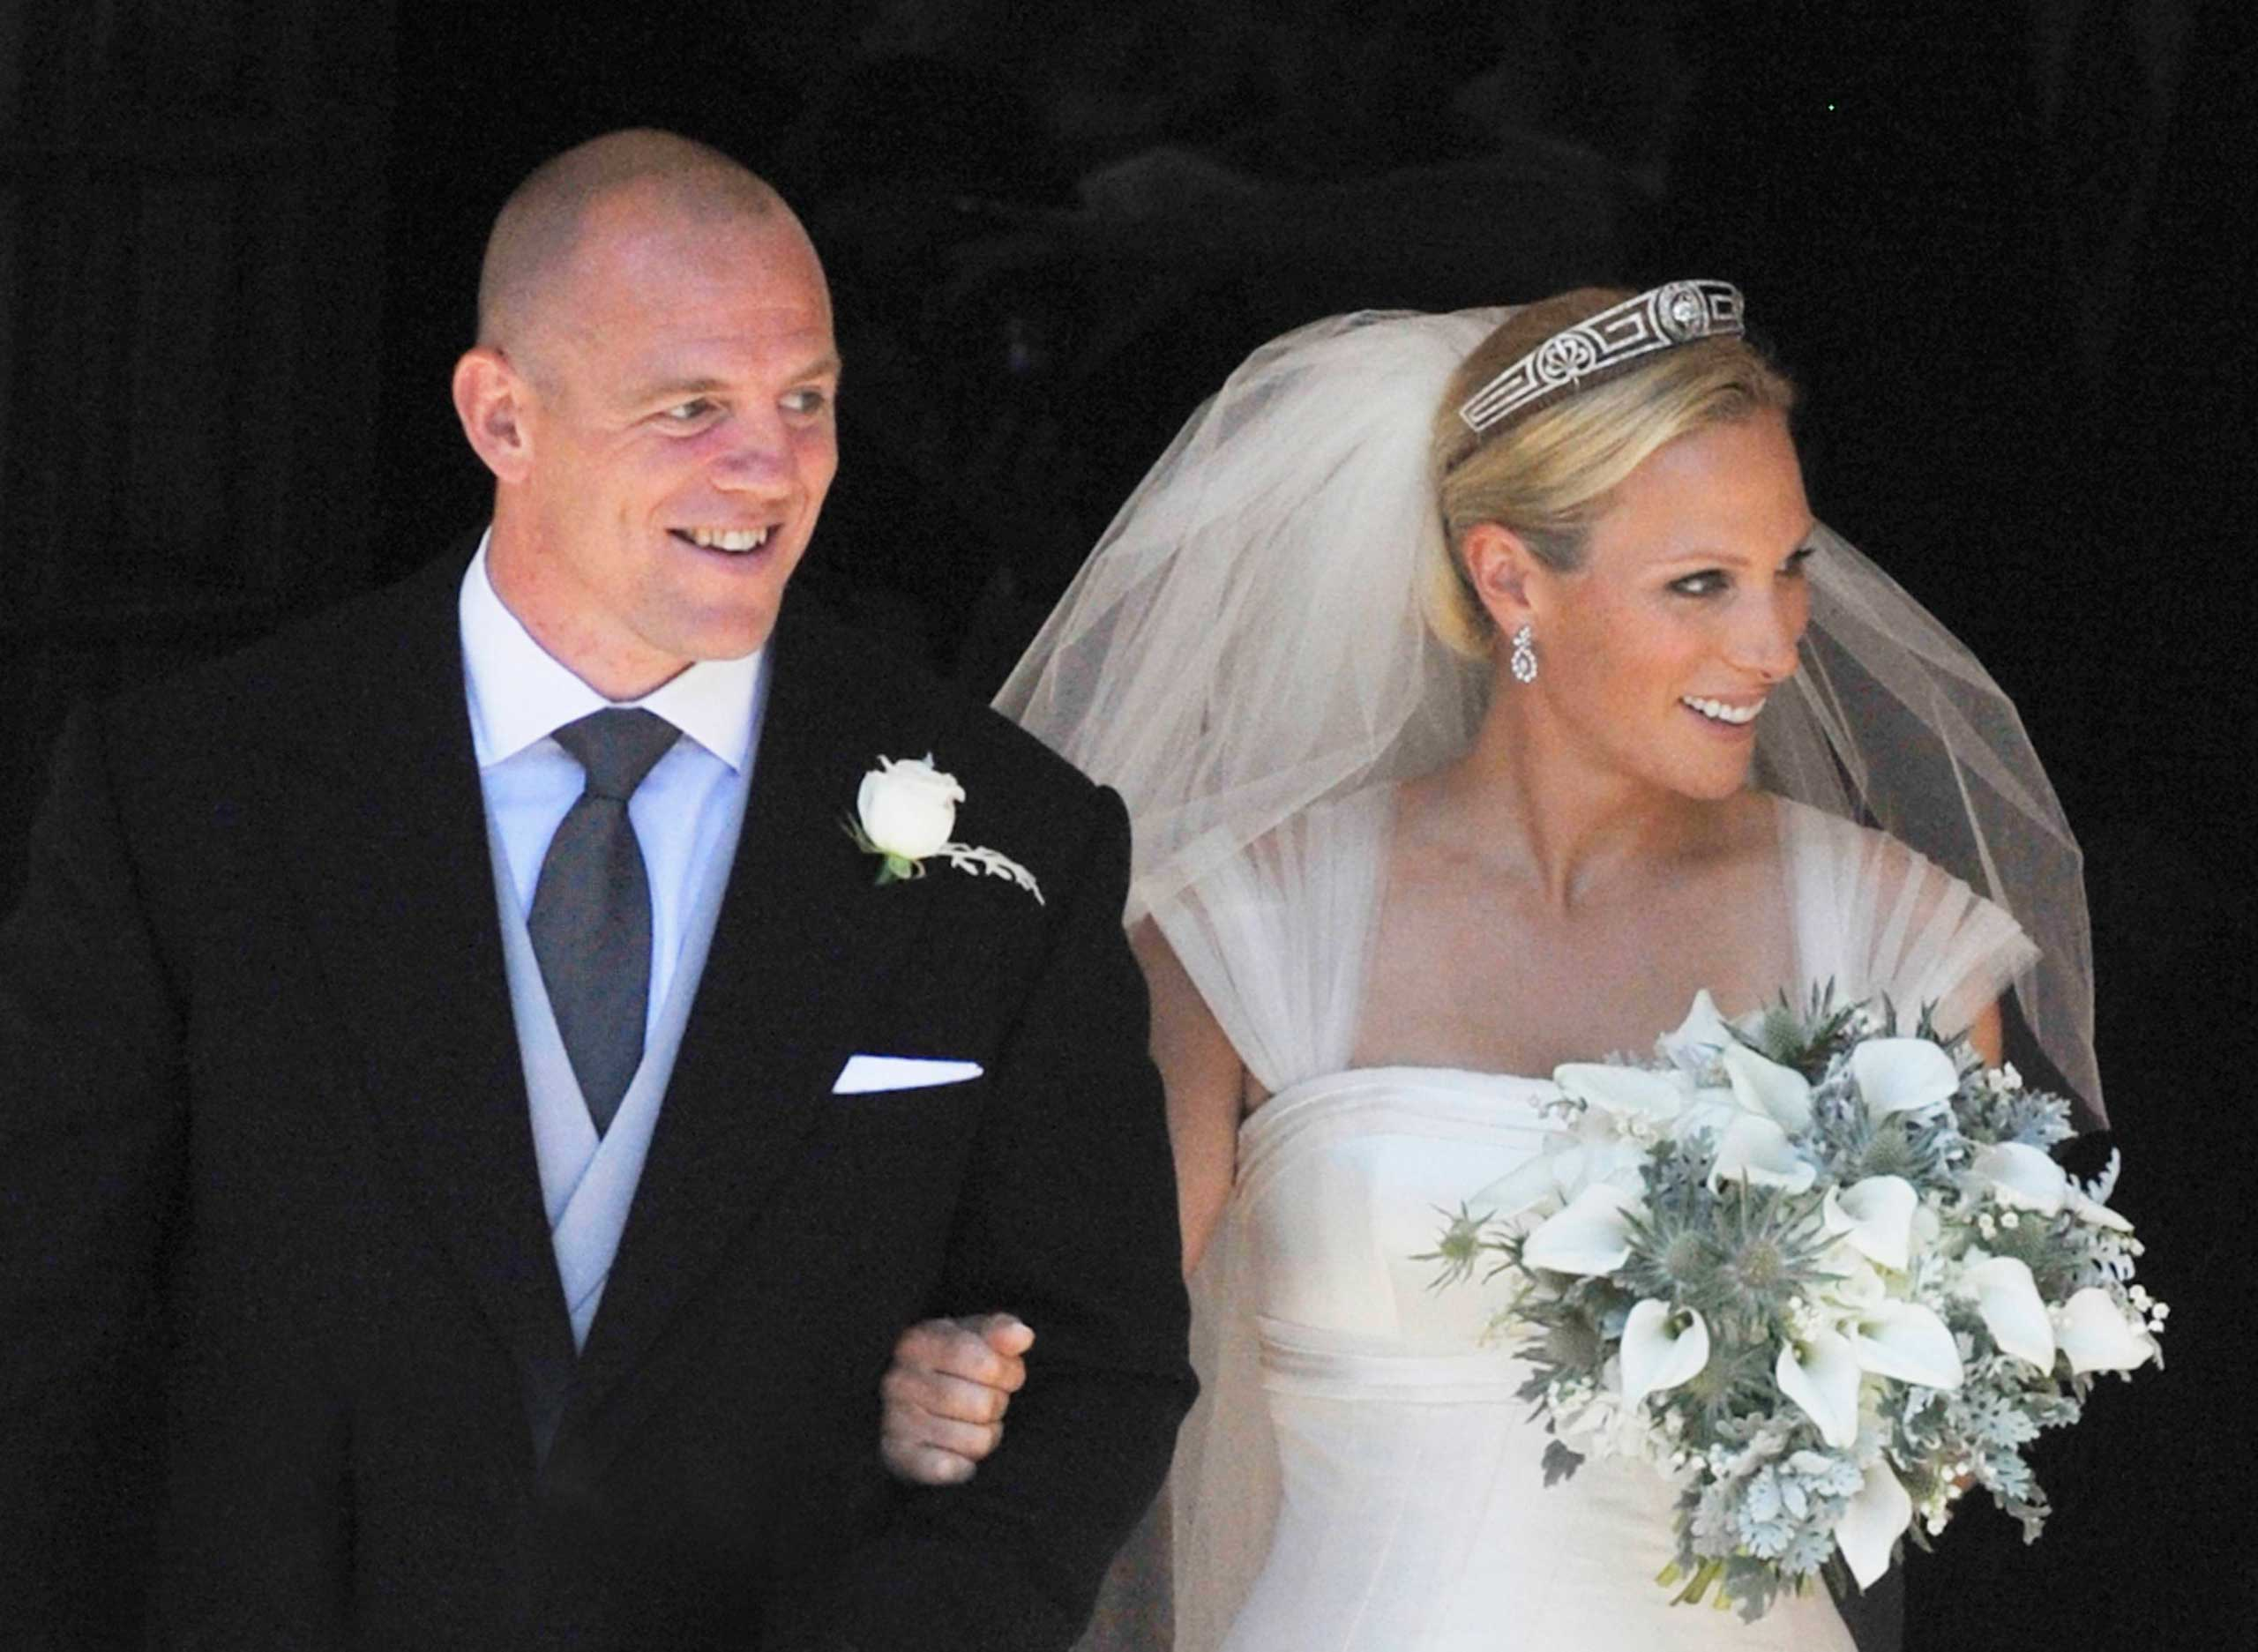 Zara Phillips and Mike Tindall in Edinburgh on July 30, 2011.